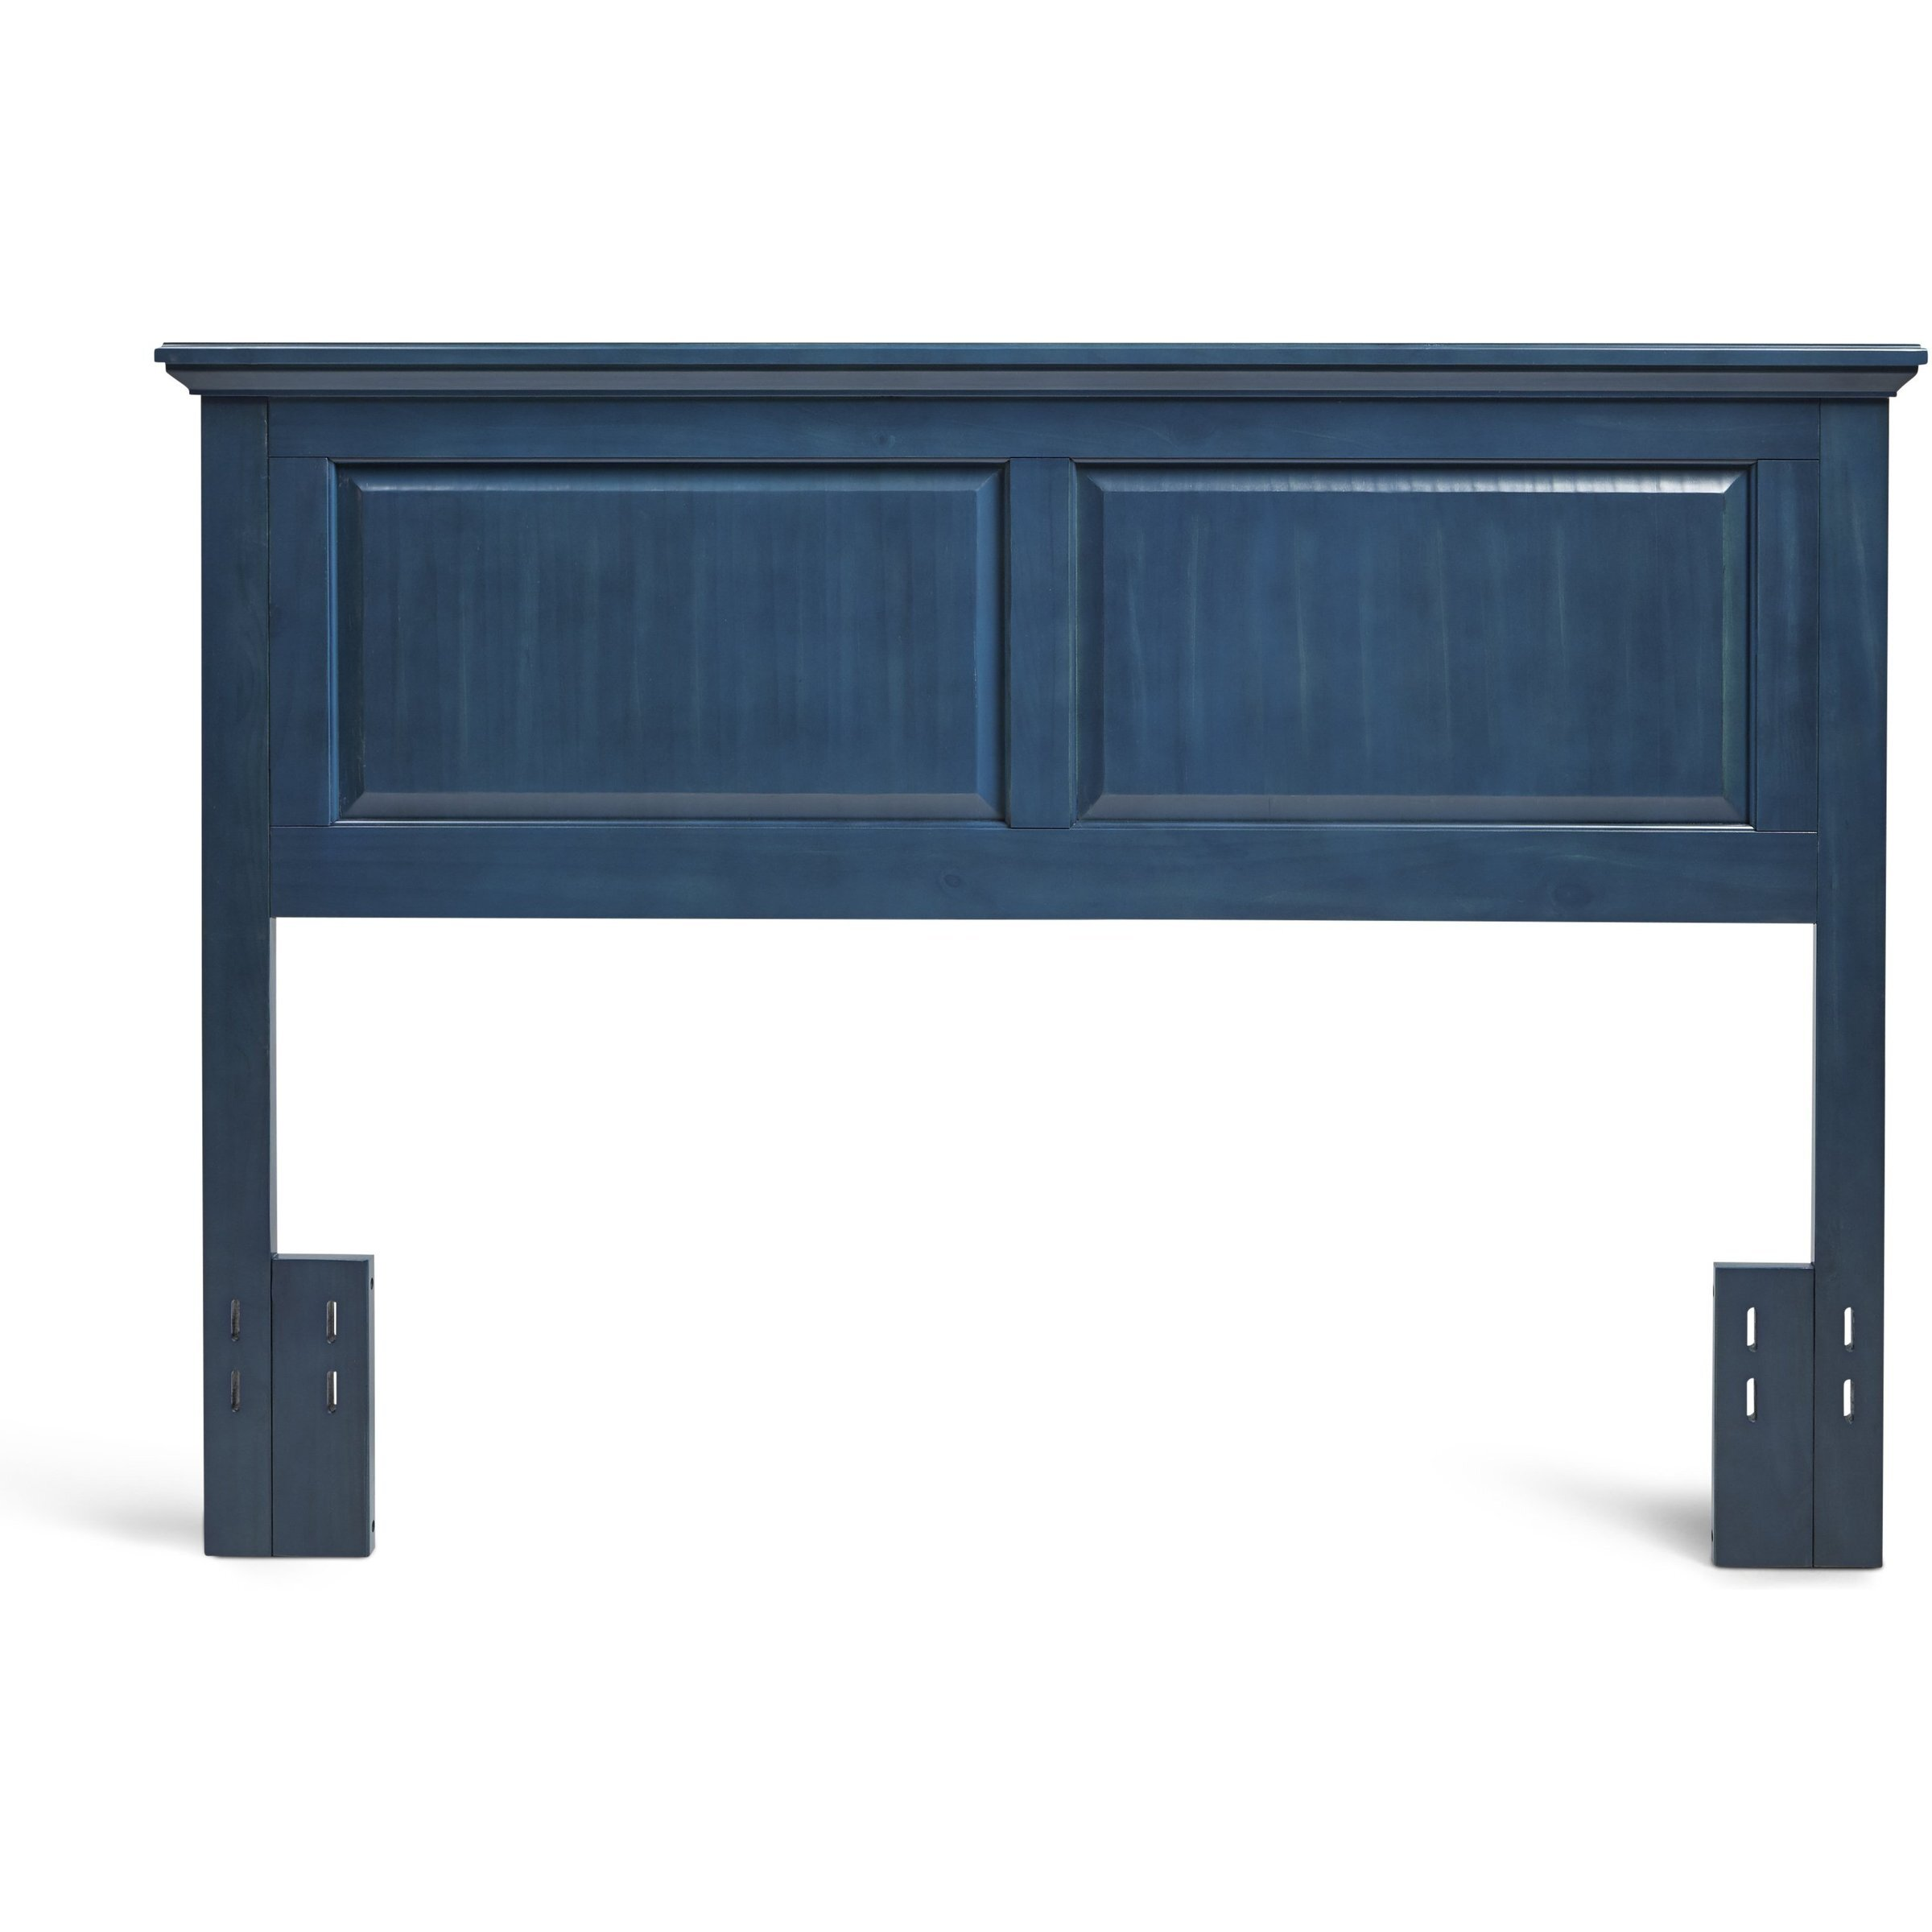 BLUE WOOD HEADBOARD AVAILABLE IN A FULL / QUEEN